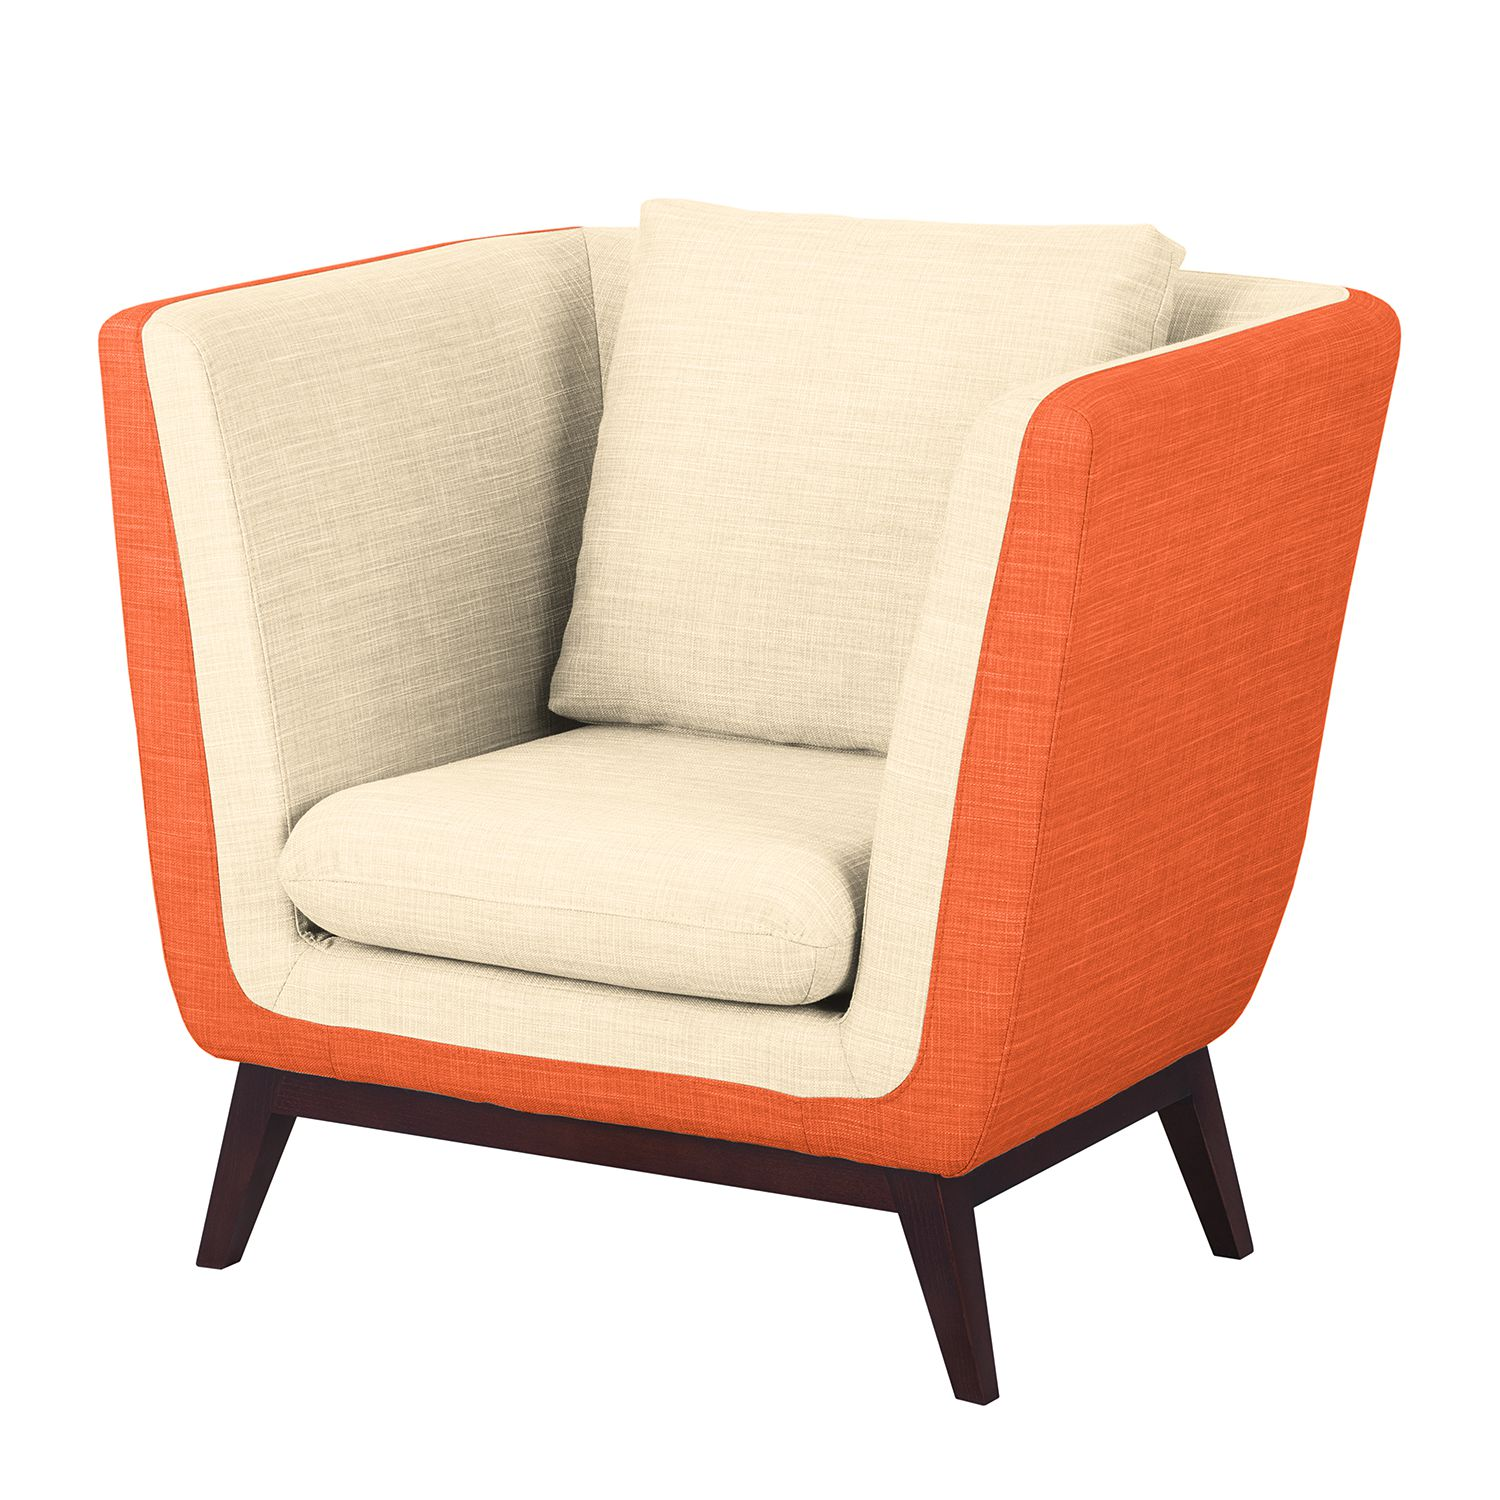 Sessel Sagone - Webstoff - Orange / Cremeweiß, Morteens